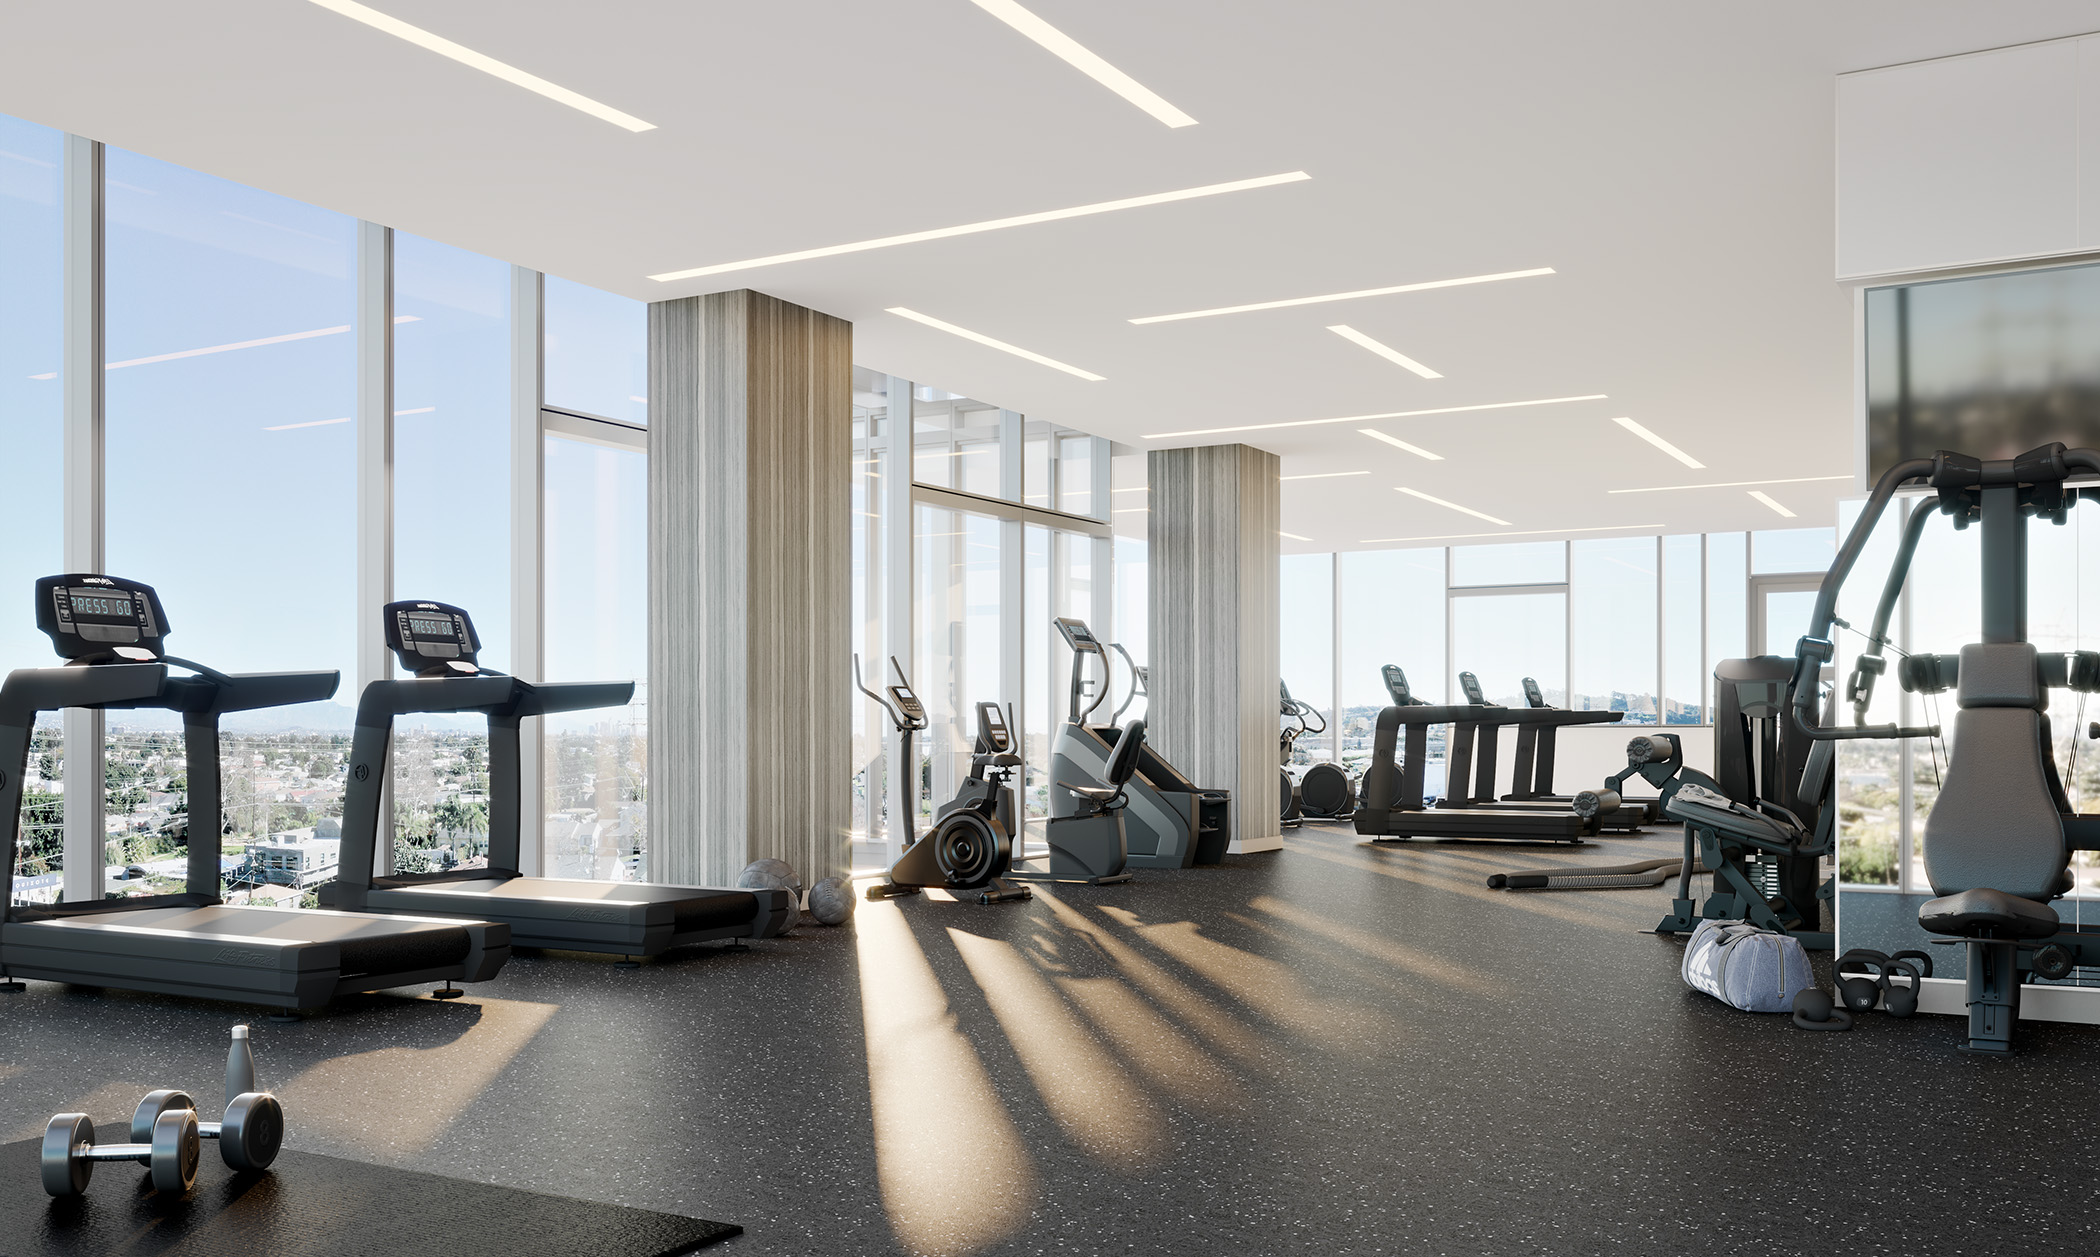 Interior of fitness room with various exercise machines and floor to ceiling windows.